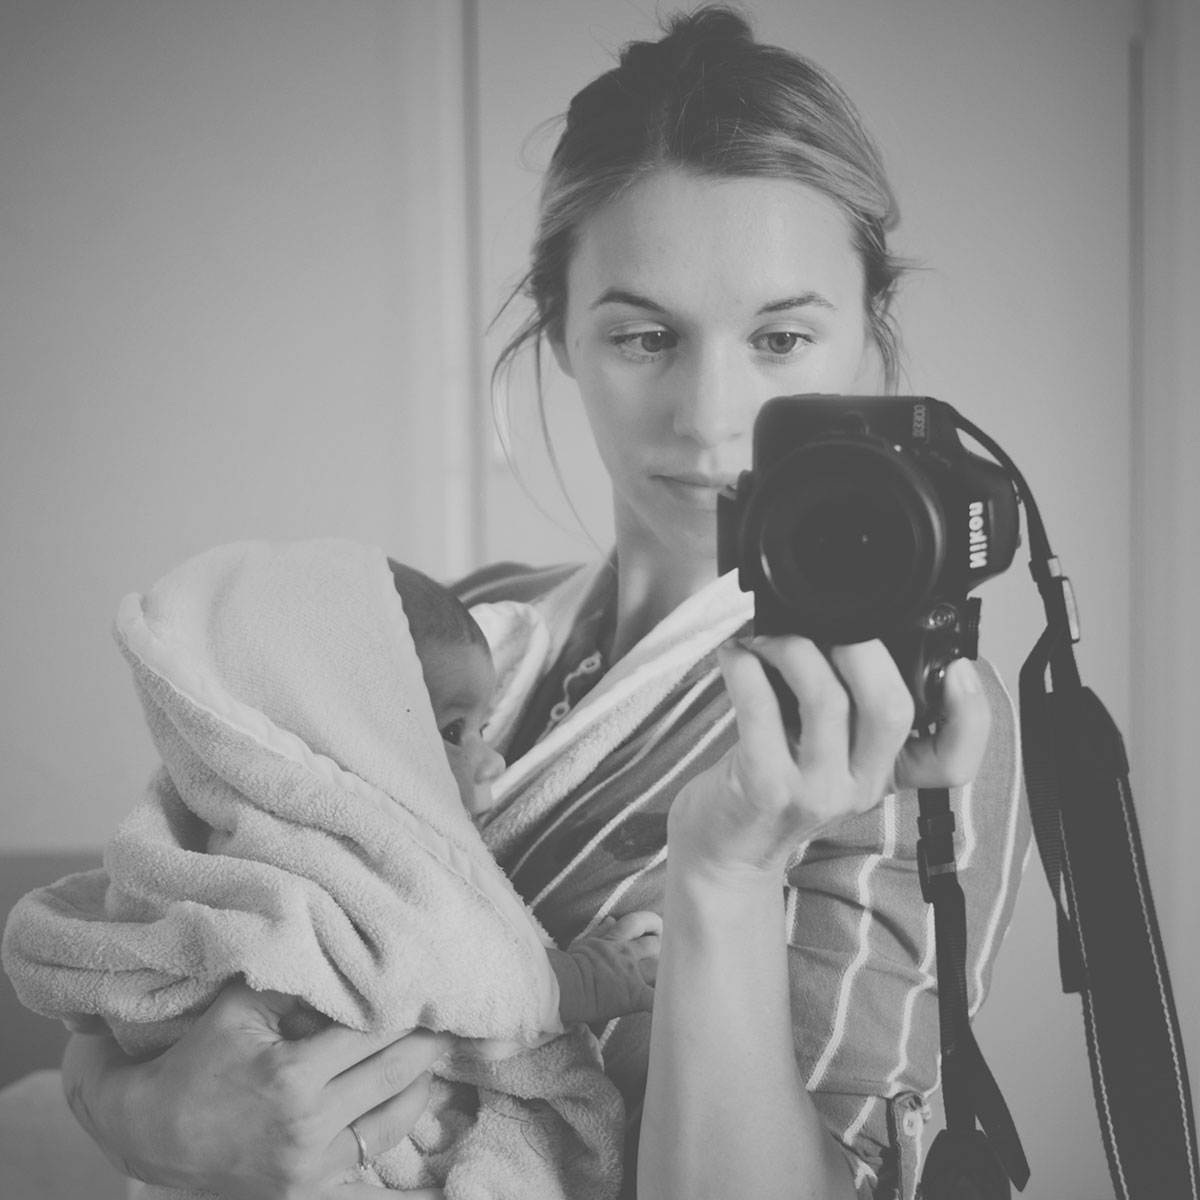 Our month in insta-snaps; September 2016 - Mother taking selfie with Nikon D3300 holding newborn baby boy in Cuddledry original oatmeal towel